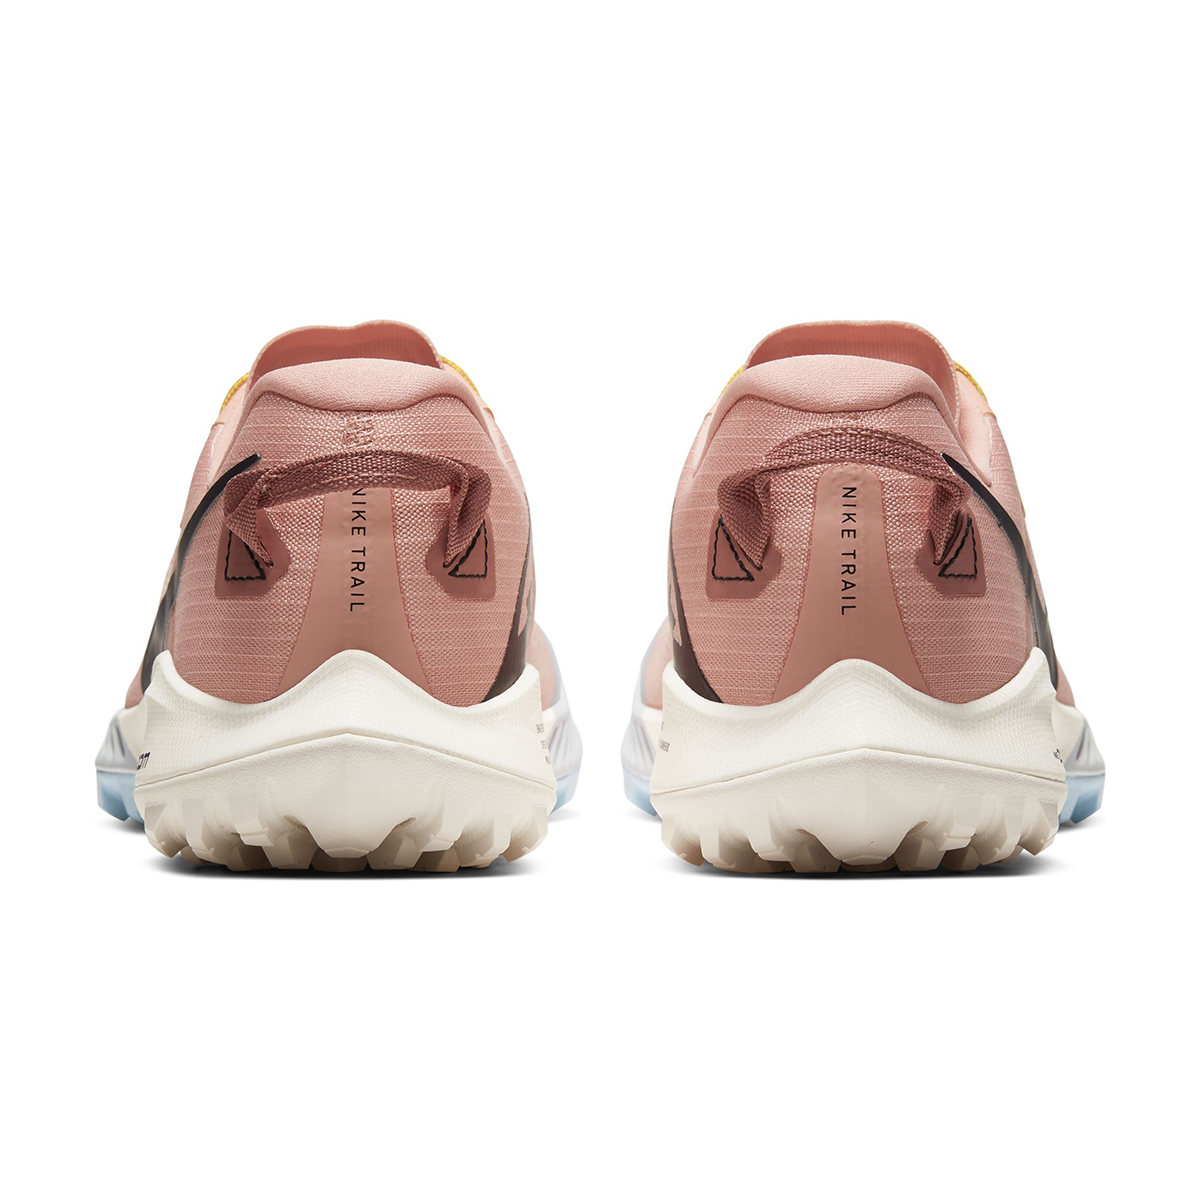 Women's Nike Air Zoom Terra Kiger 6 Trail Running Shoe - Color: Pink Quartz/Canyon Pink/Sky Grey/Burgundy Ash (Regular Width) - Size: 5, Pink Quartz/Canyon Pink/Sky Grey/Burgundy Ash, large, image 3